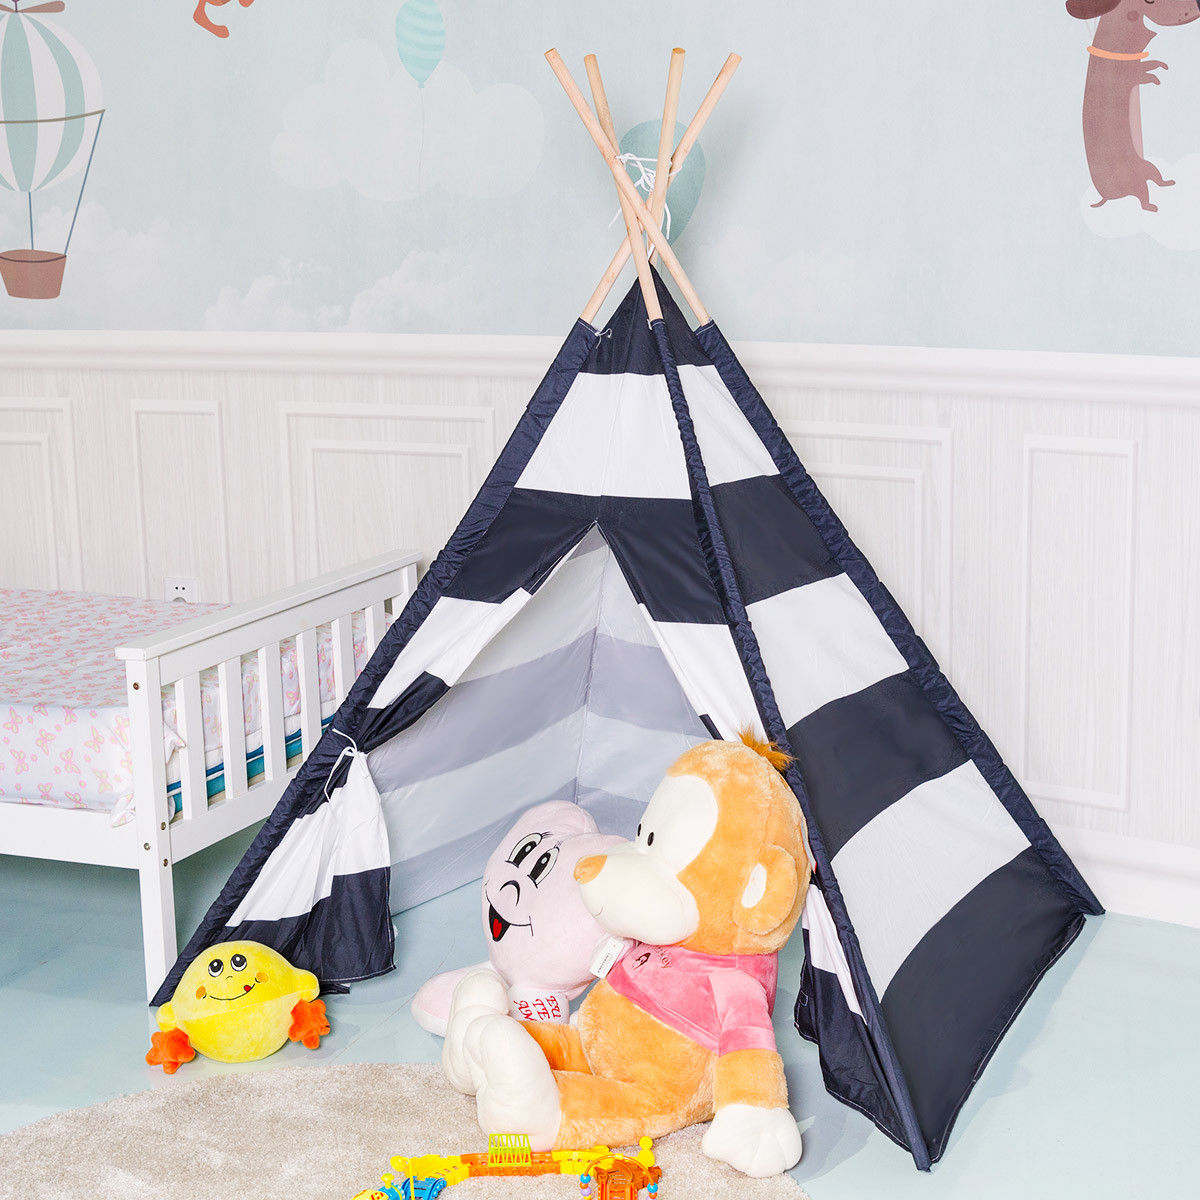 Gymax 5u0027 Indian Play Tent Teepee Children Playhouse Sleeping Dome Portable Carry Bag  sc 1 st  Walmart & Gymax 5u0027 Indian Play Tent Teepee Children Playhouse Sleeping Dome ...